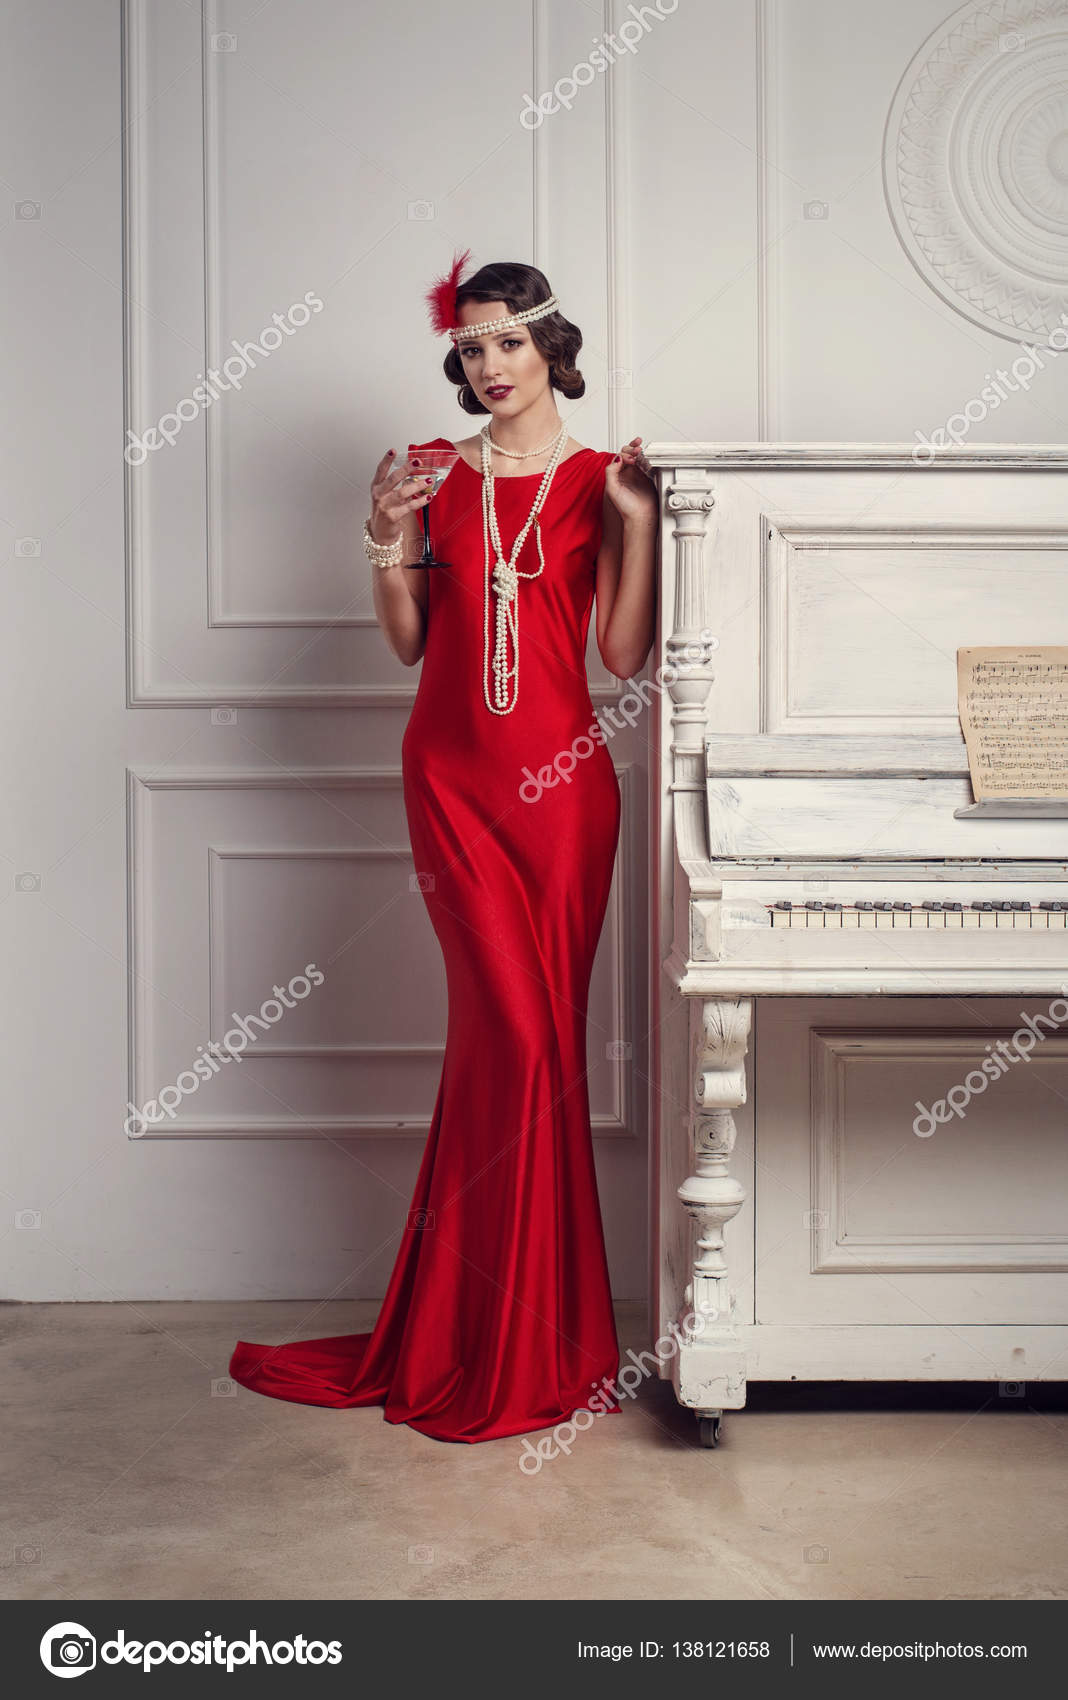 Young Beautiful Girl In Red Dress Style Of The 20 S Or 30 S With